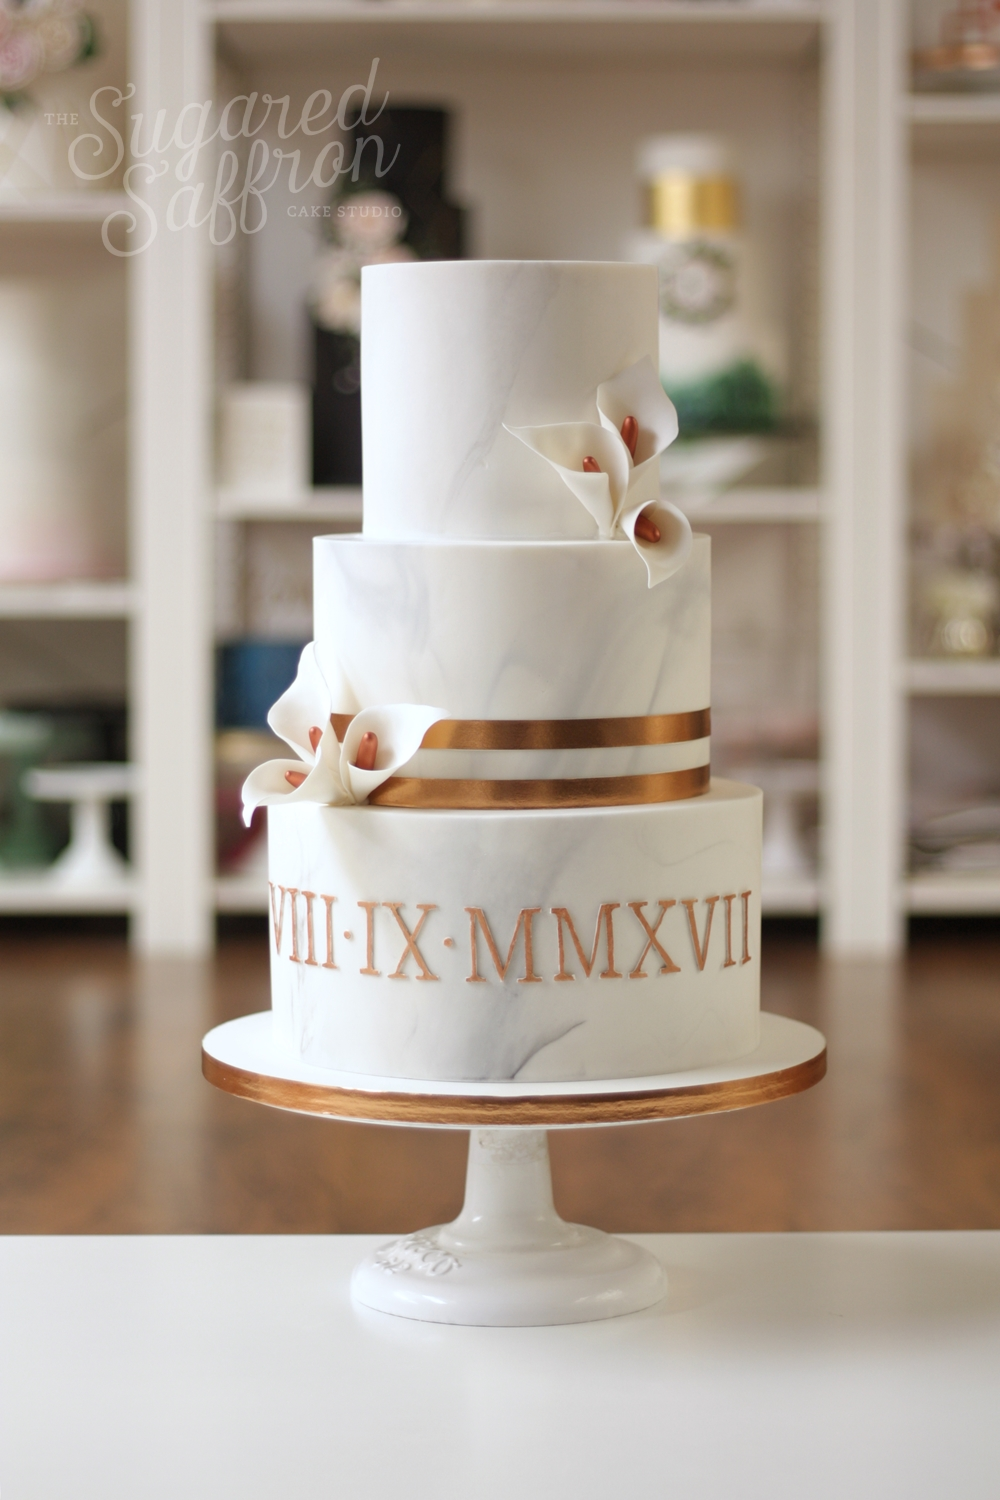 Marble wedding cake with copper stripes and roman numerals